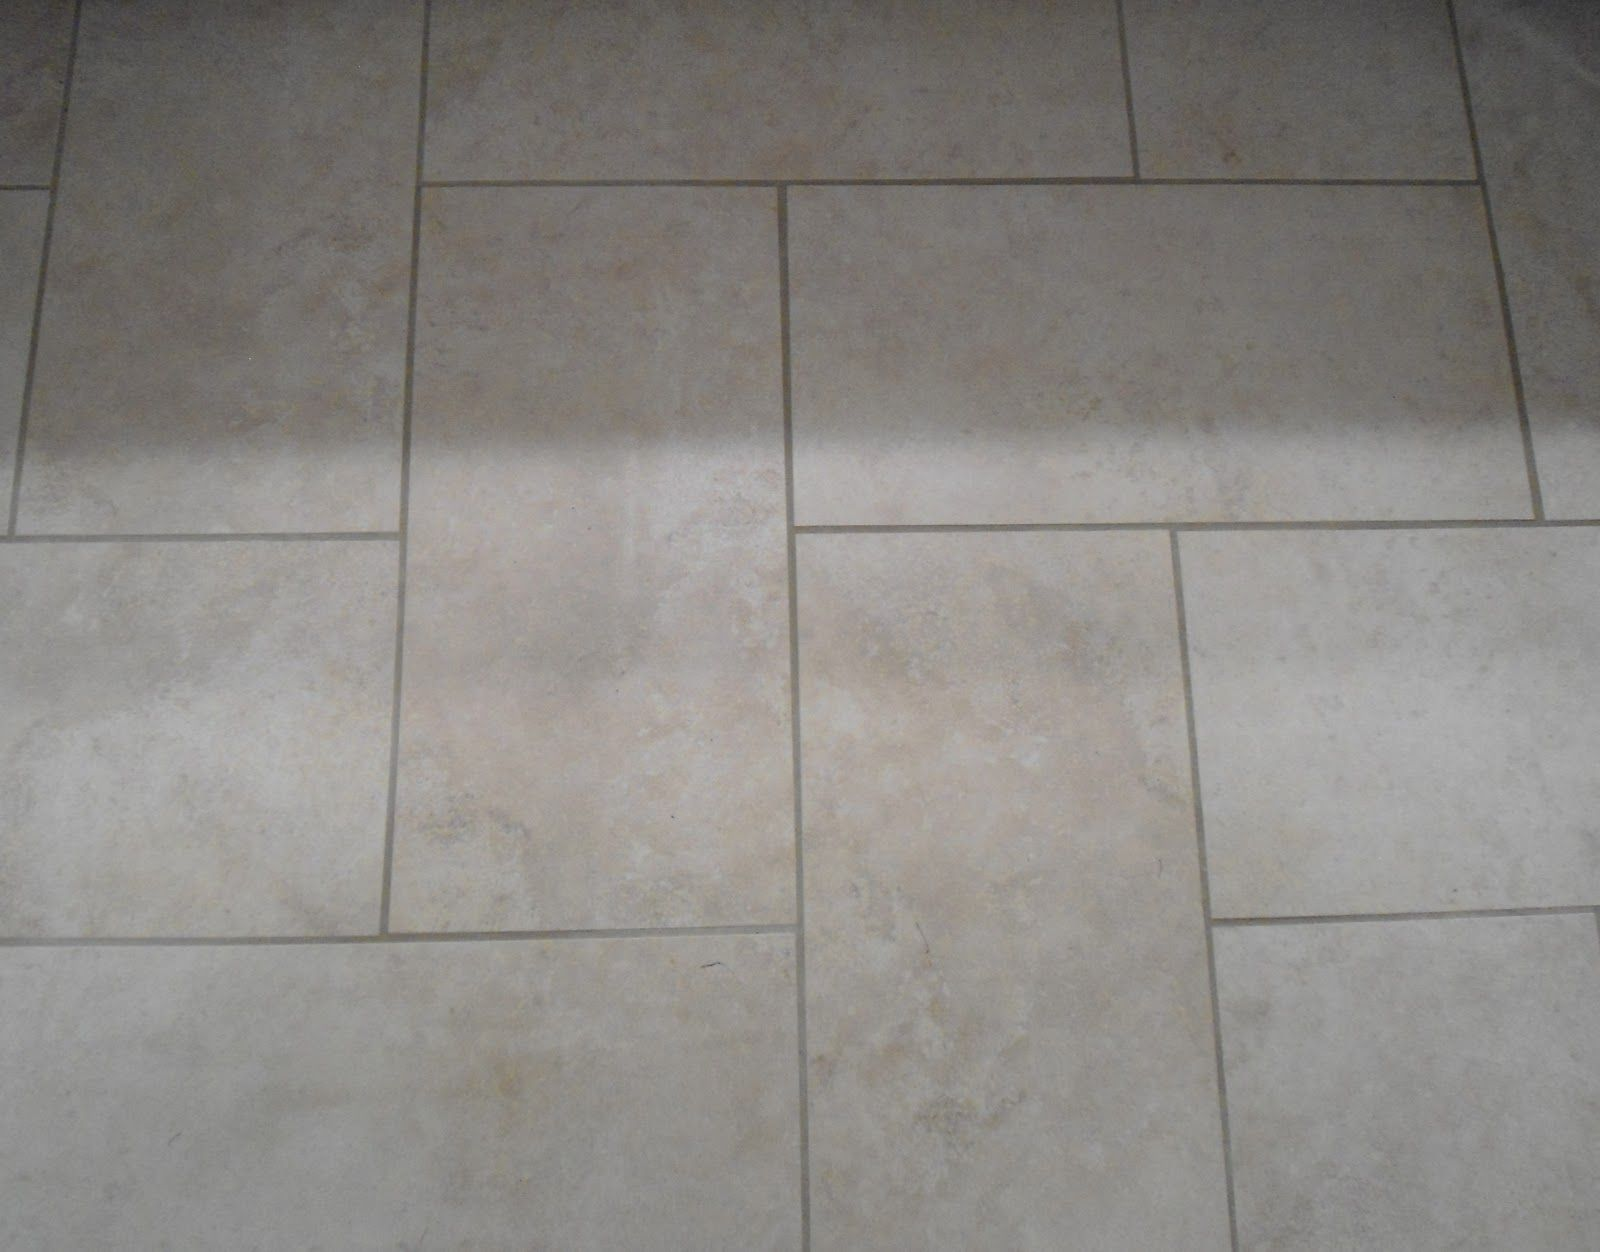 Pictures Of Diffe Tile Patterns 12 X 24 Plank Tiles By Stone Peak Ceramics Pattern Limestone